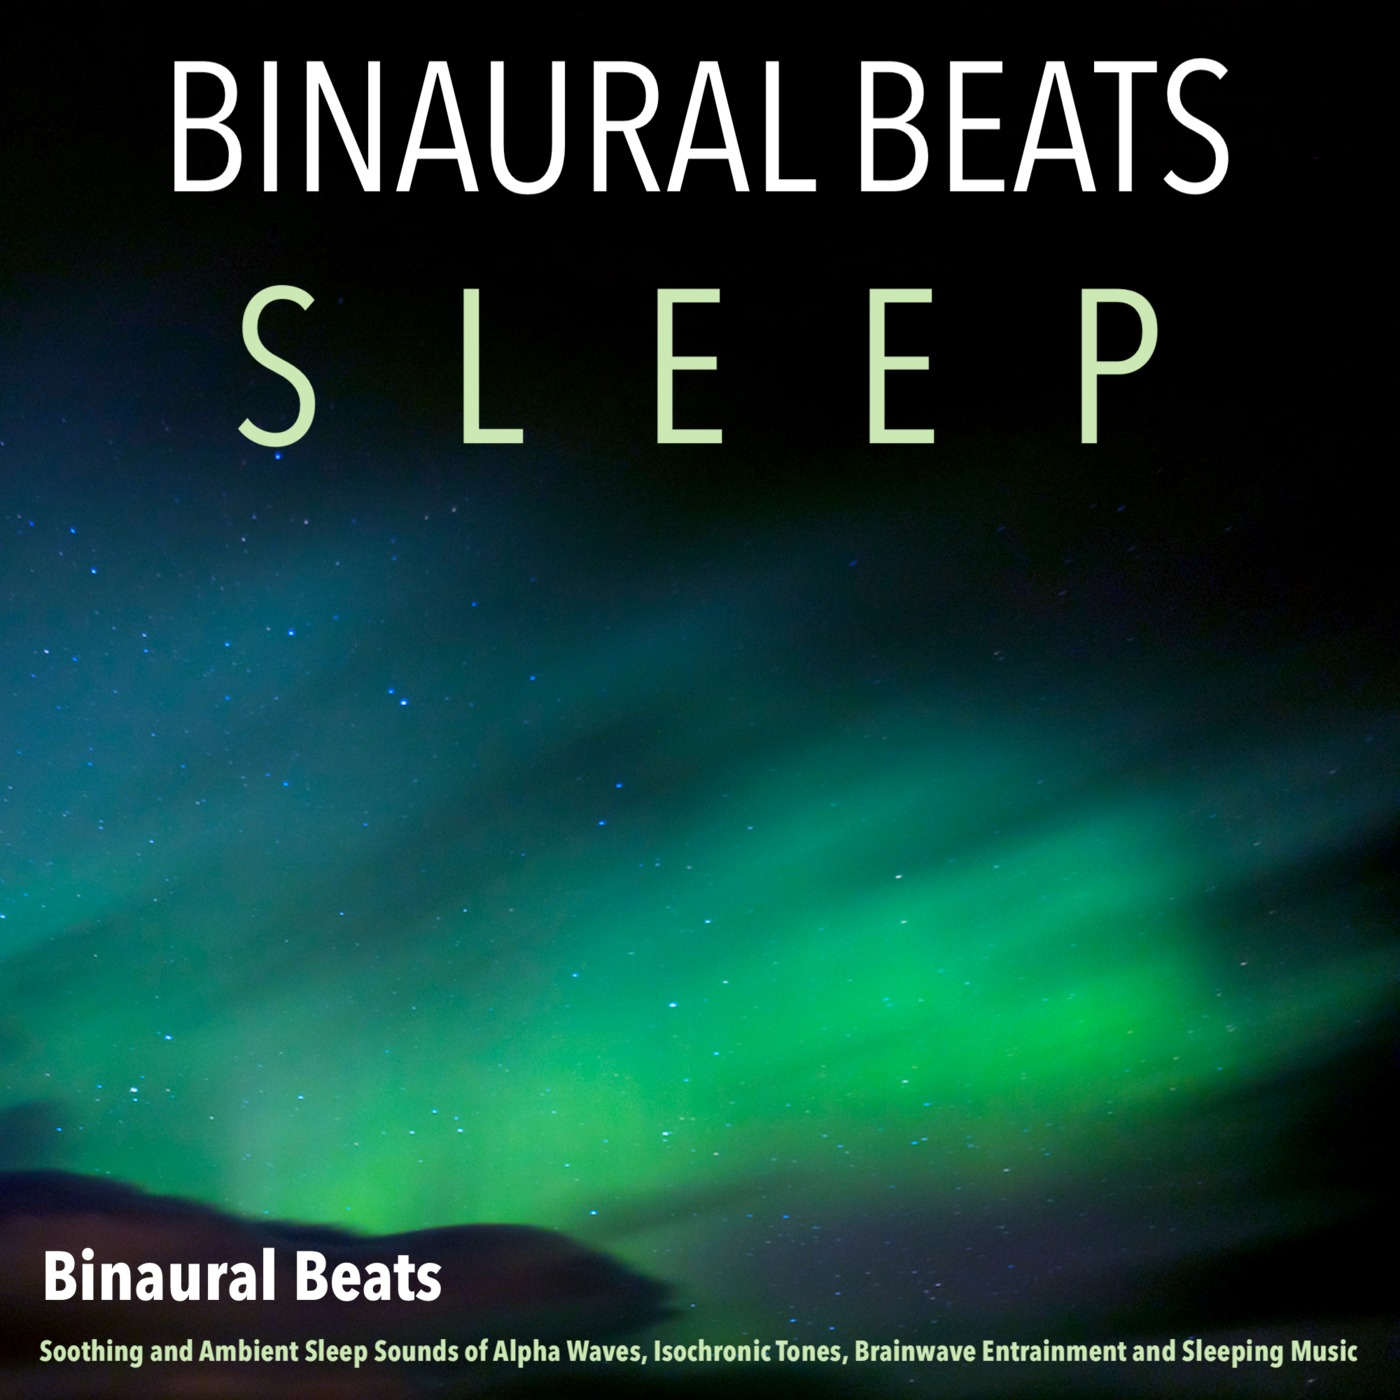 listen free to binaural beats sleep ambient sleep sounds and binaural beats radio iheartradio. Black Bedroom Furniture Sets. Home Design Ideas